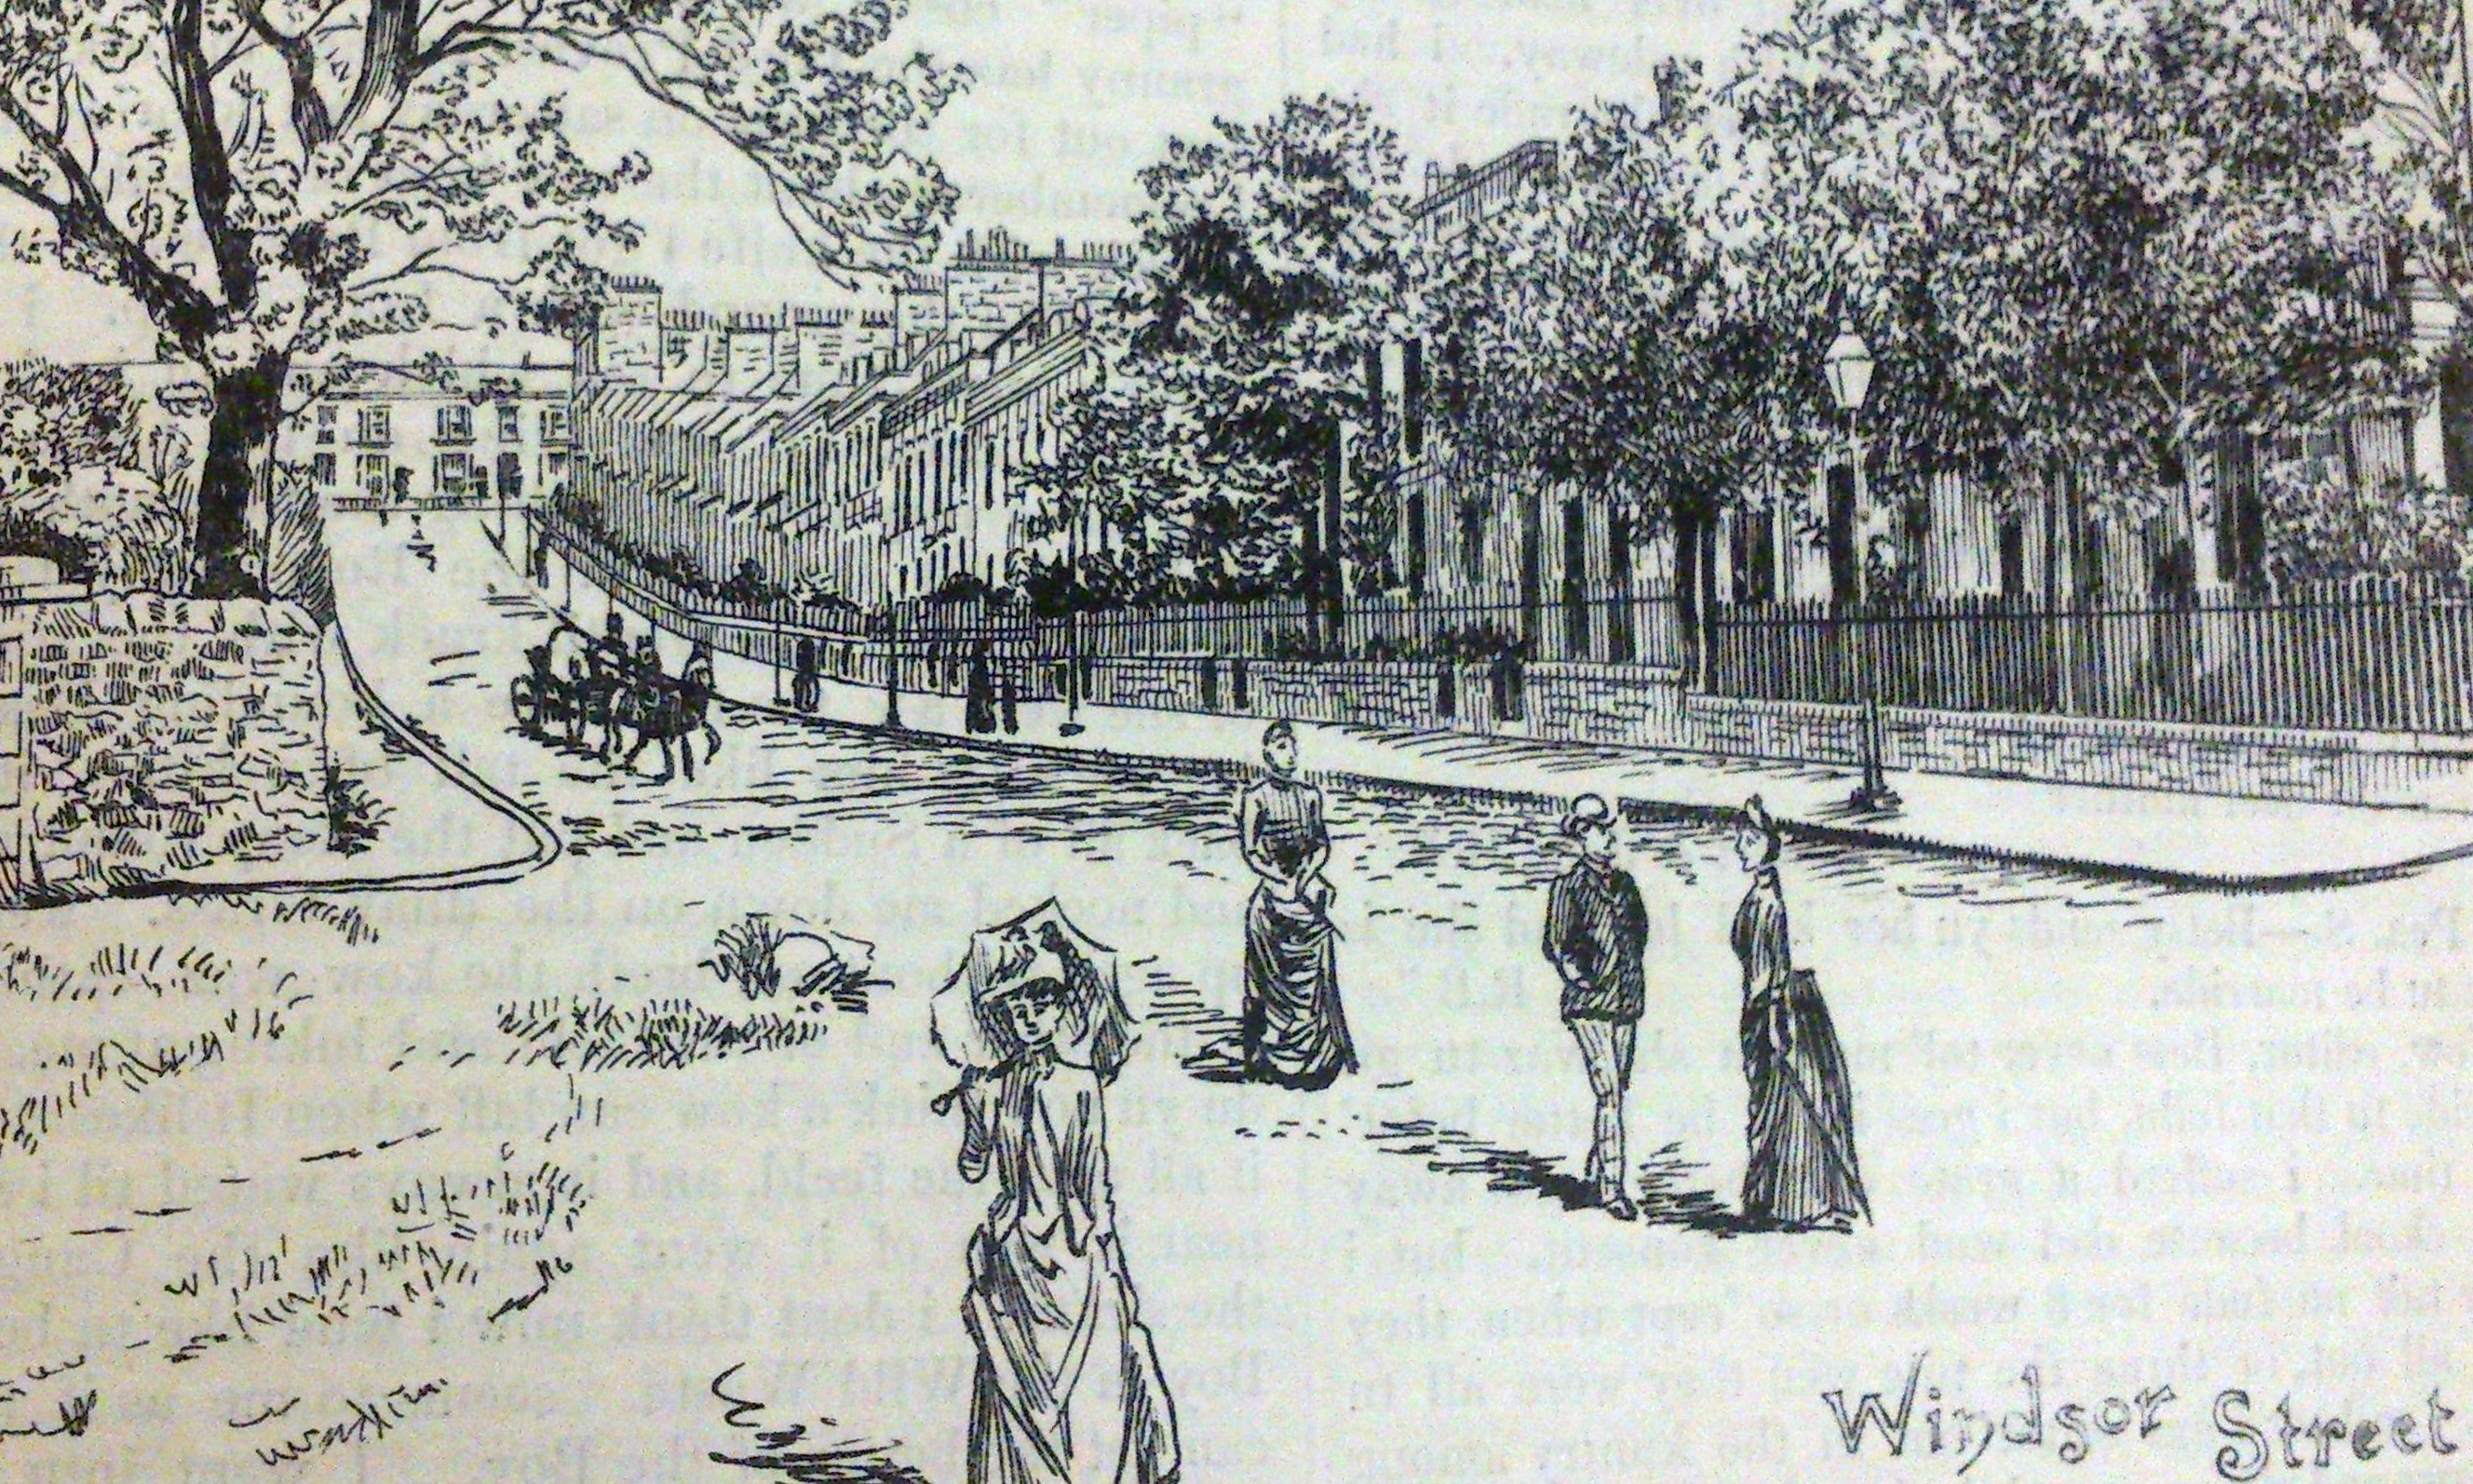 Dundee's West End in 1899